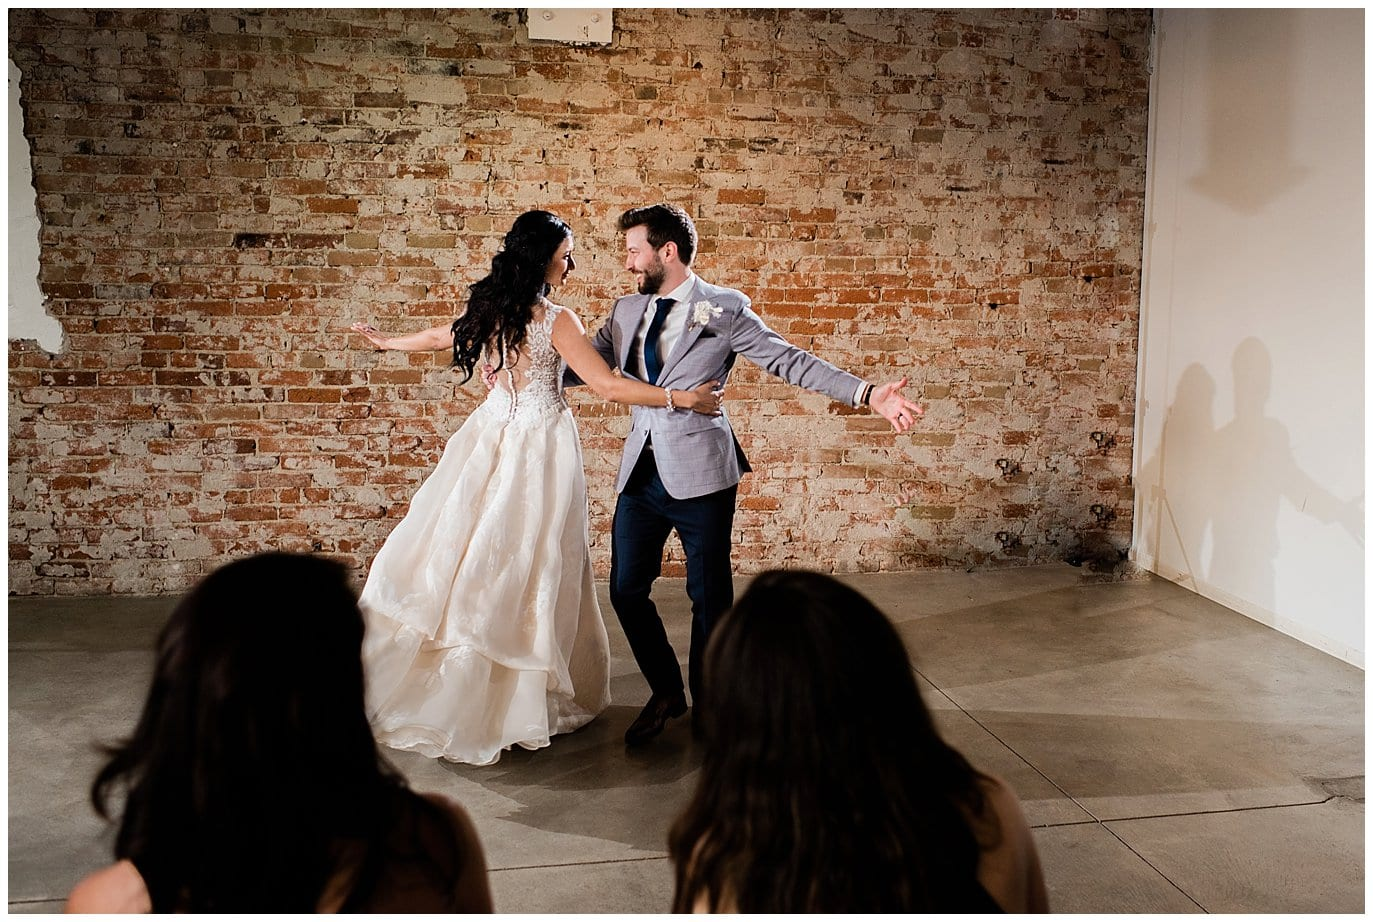 bride and groom dancing with brick wall at by Blanc Wedding Photographer Jennie Crate